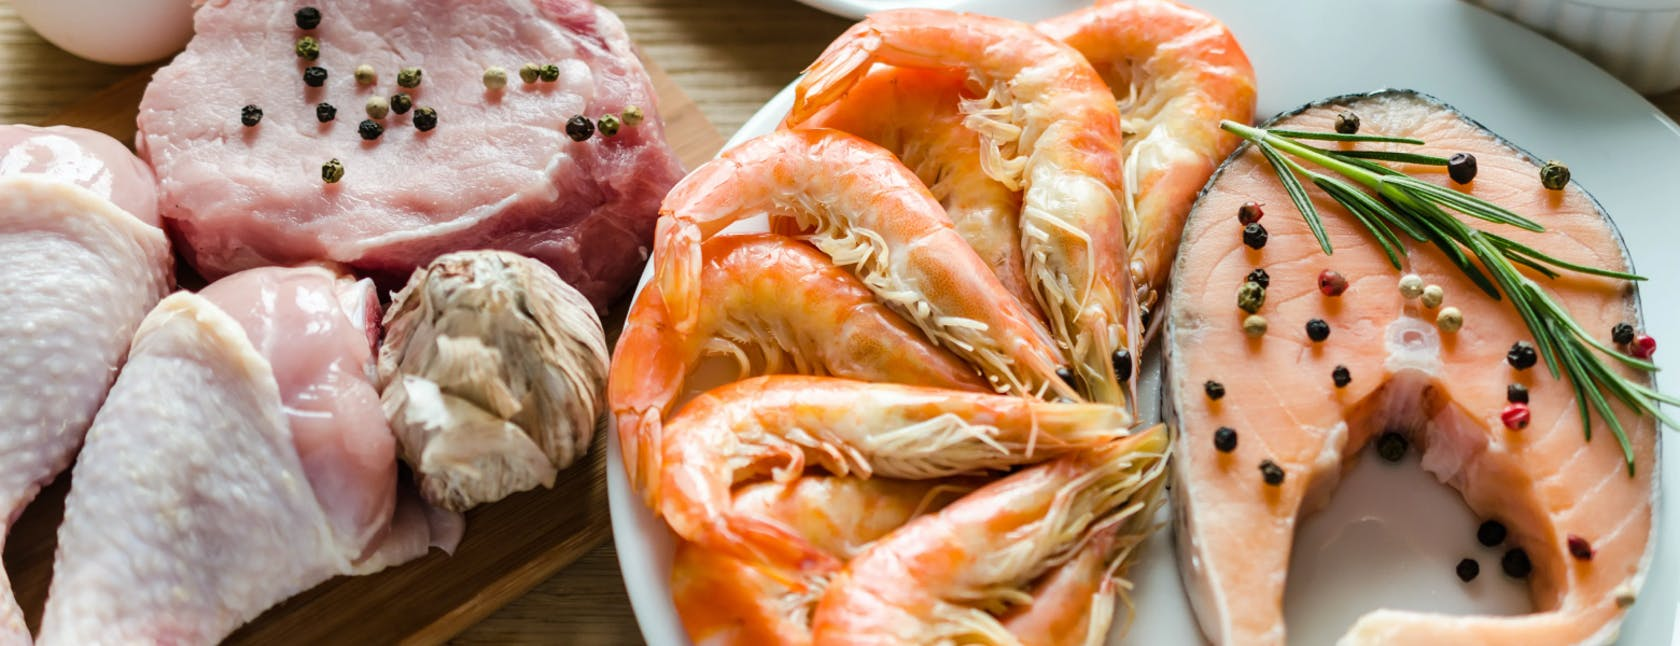 How Much Protein Should You Eat on Keto? (And What About Gluconeogenesis?)